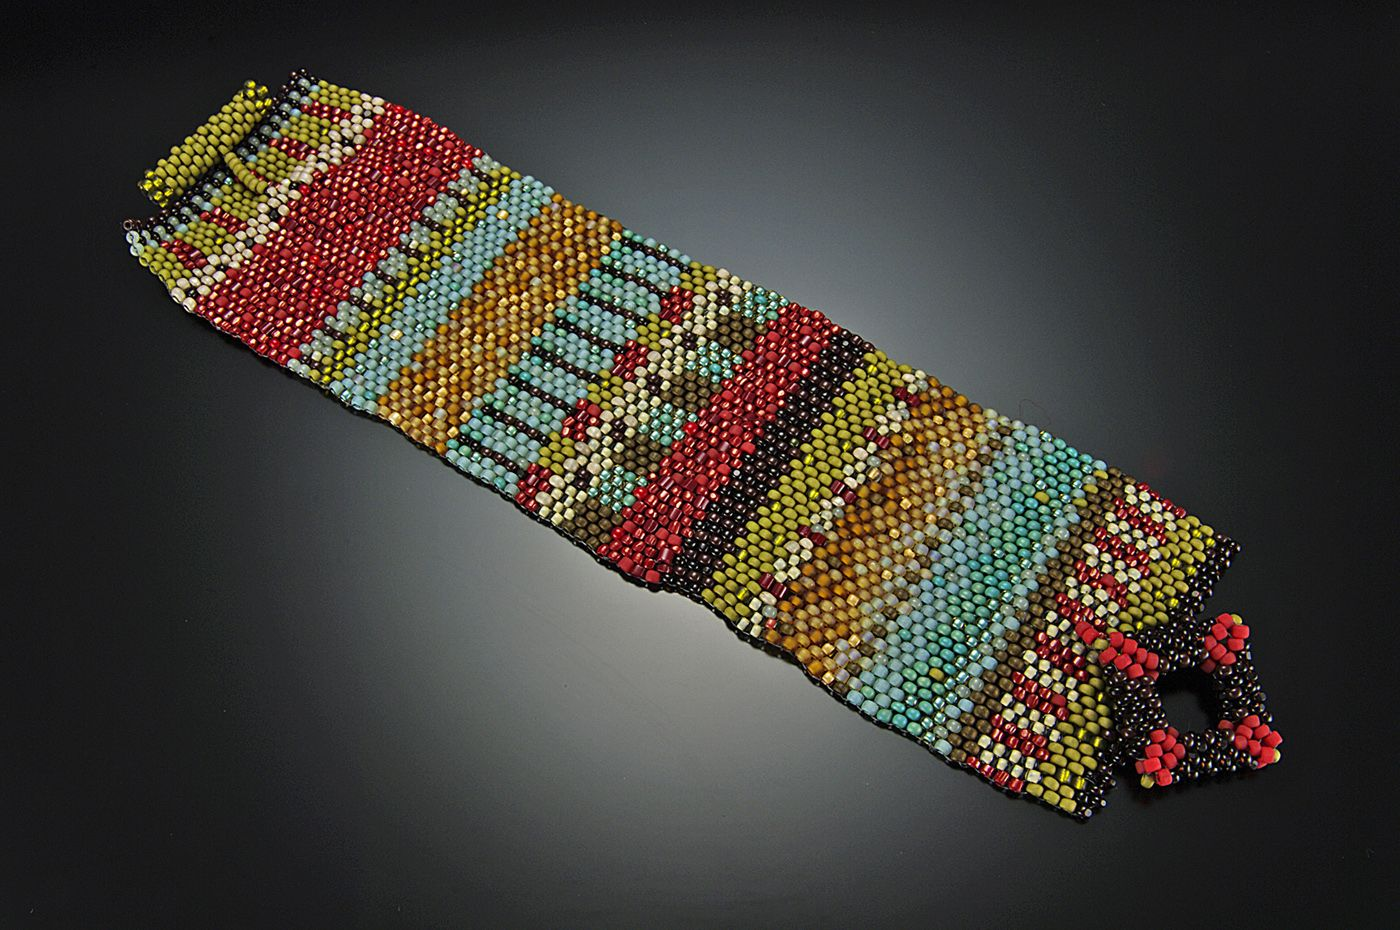 Navajo Cuff - A beautifultapestry blanket that wraps your wrist $300 http://www.juliepowelldesigns.com/product/navajo-cuff/